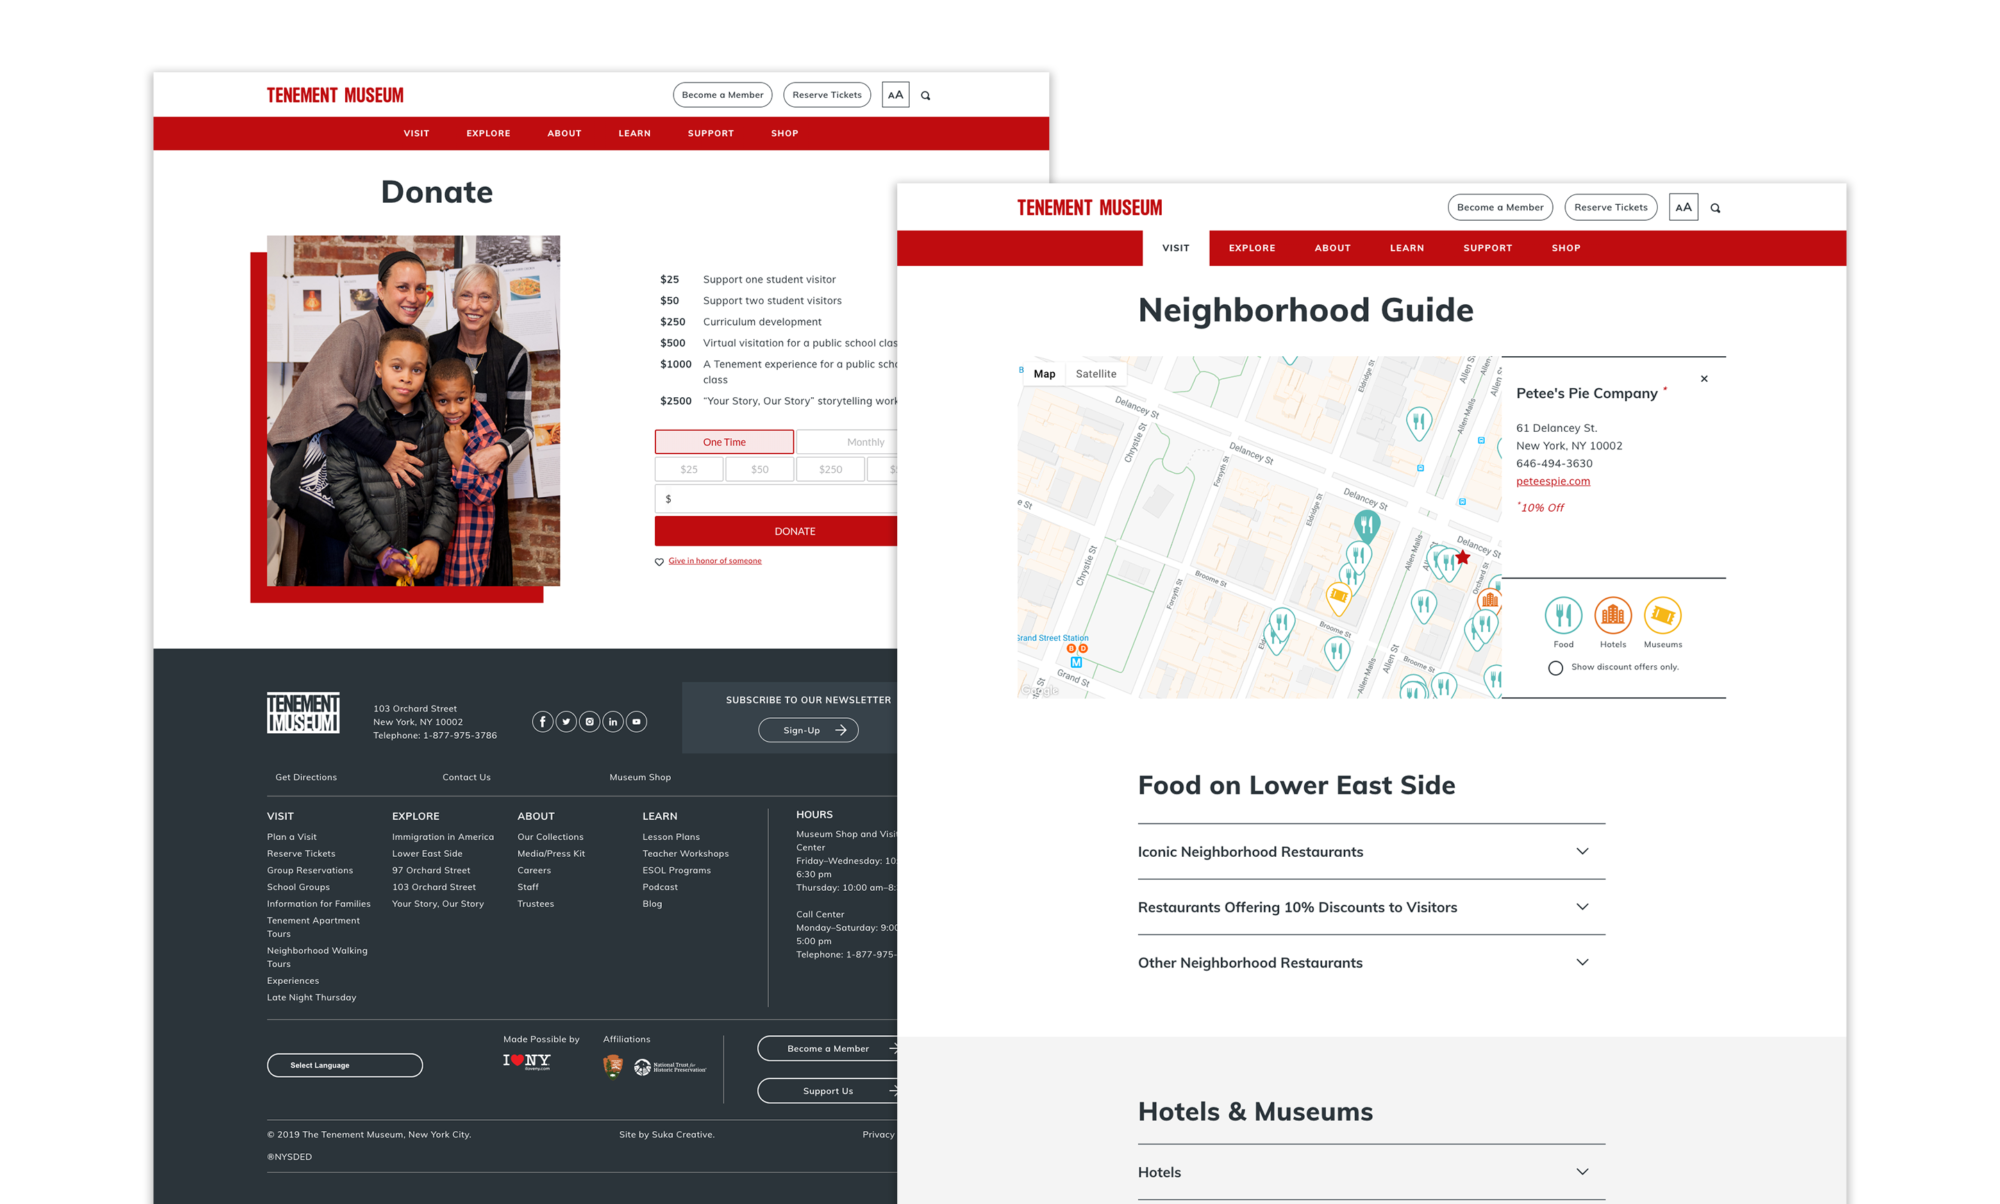 The Tenement Museum's new donation page as well as the interactive Neighborhood Guide showing restaurants, cafes, hotels, and other museums located in the Lower East Side.